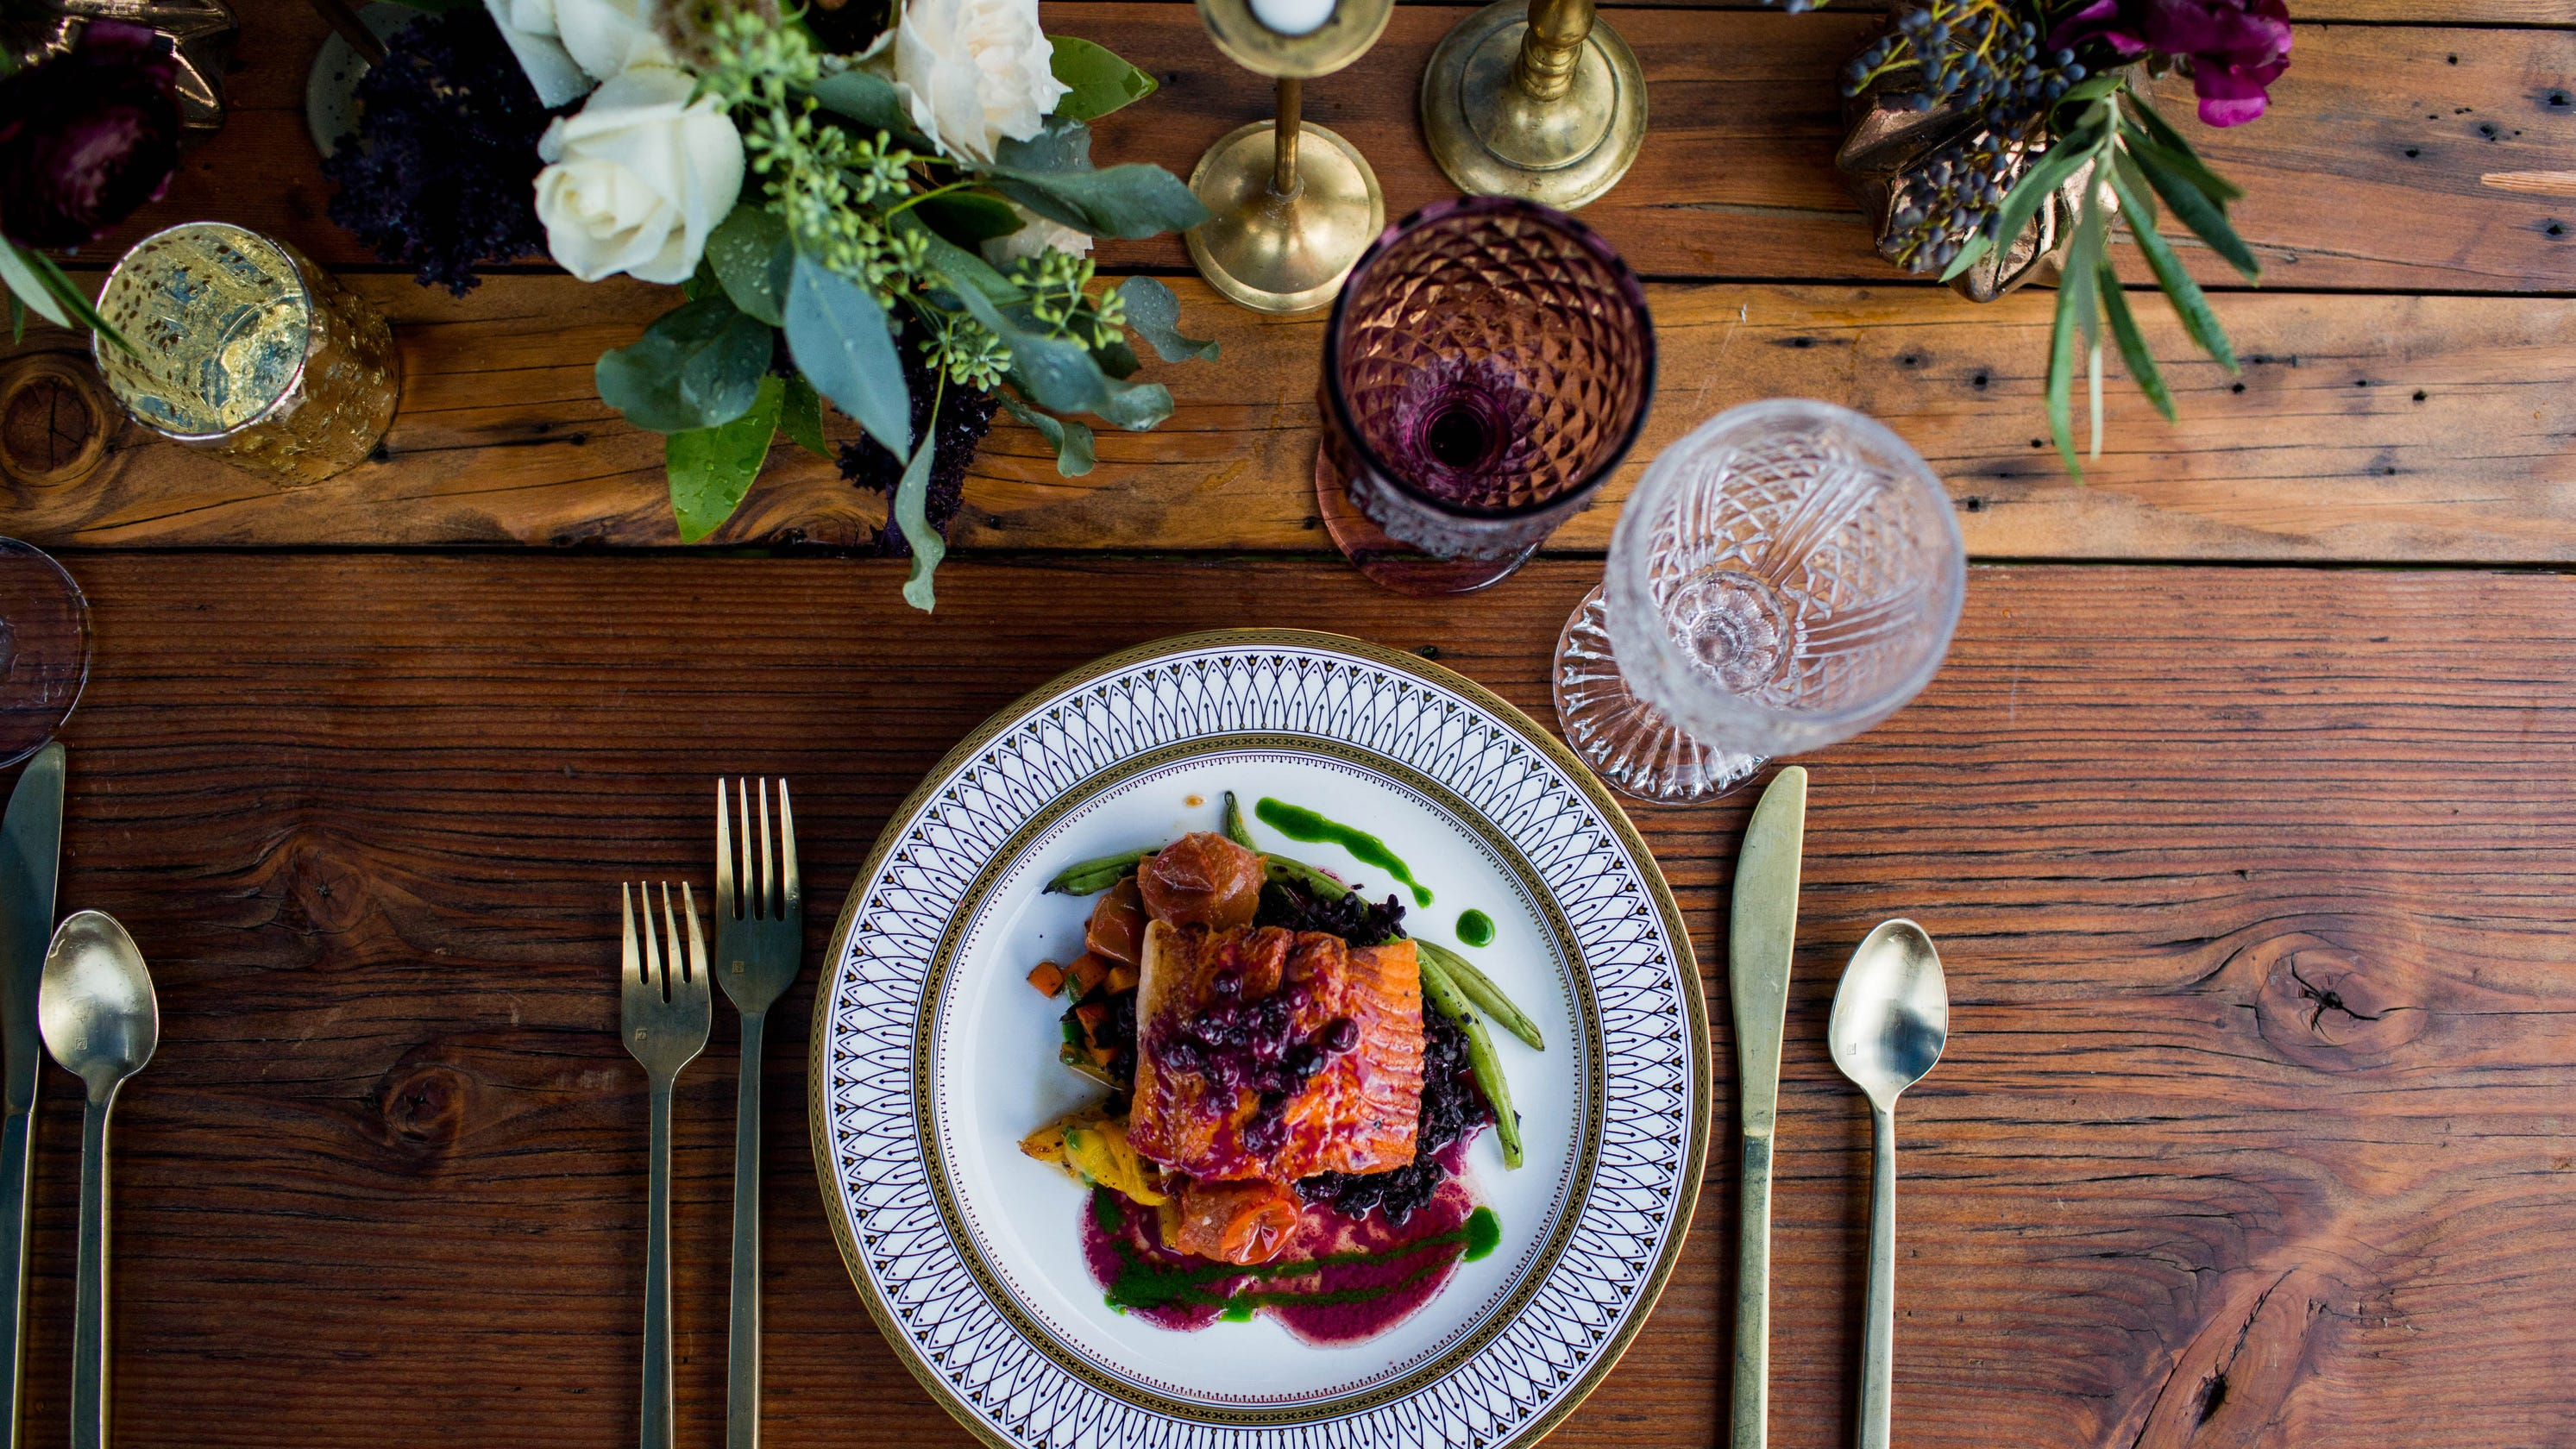 Beer And Wine Dinners And Events Offer Autumnal Date Night Inspiration photo